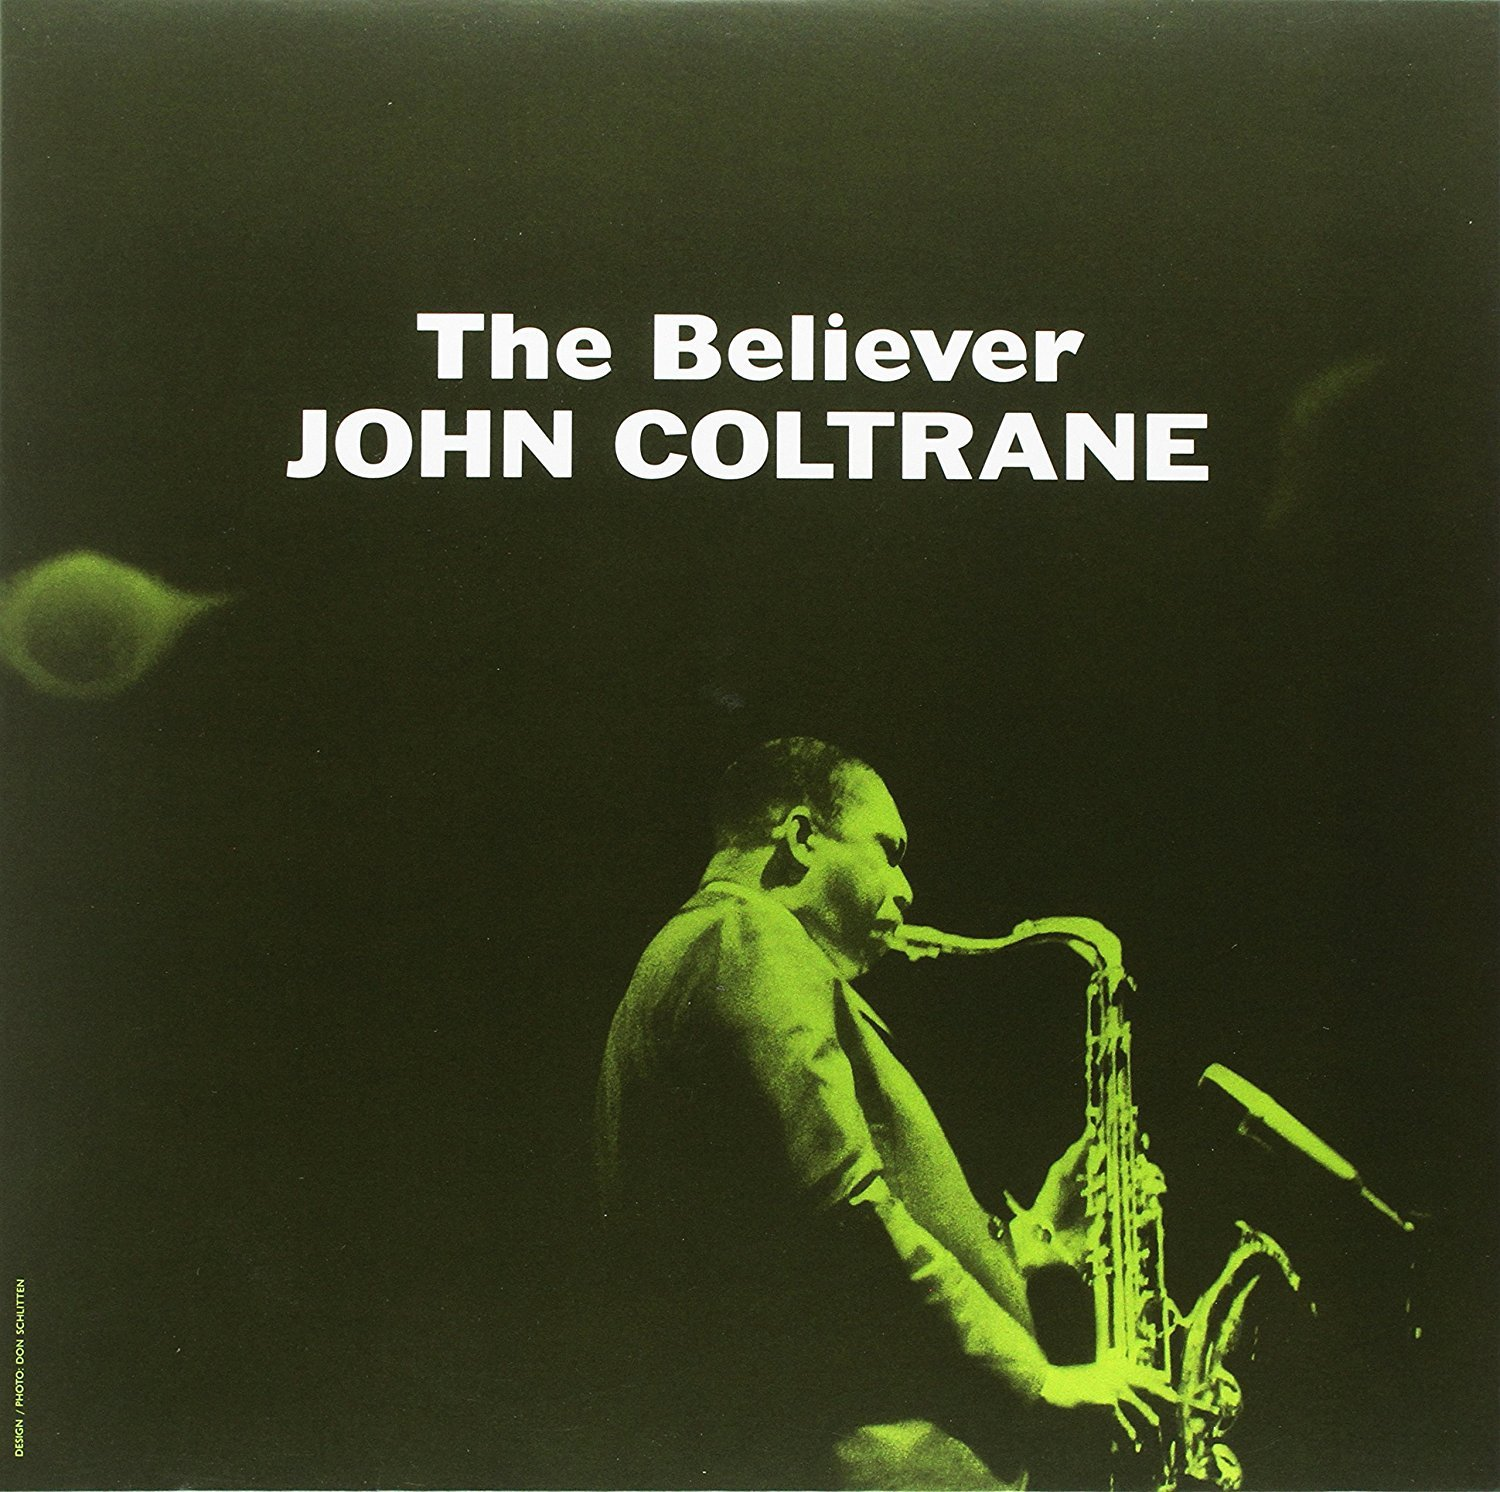 John Coltrane - The Believer [LP]